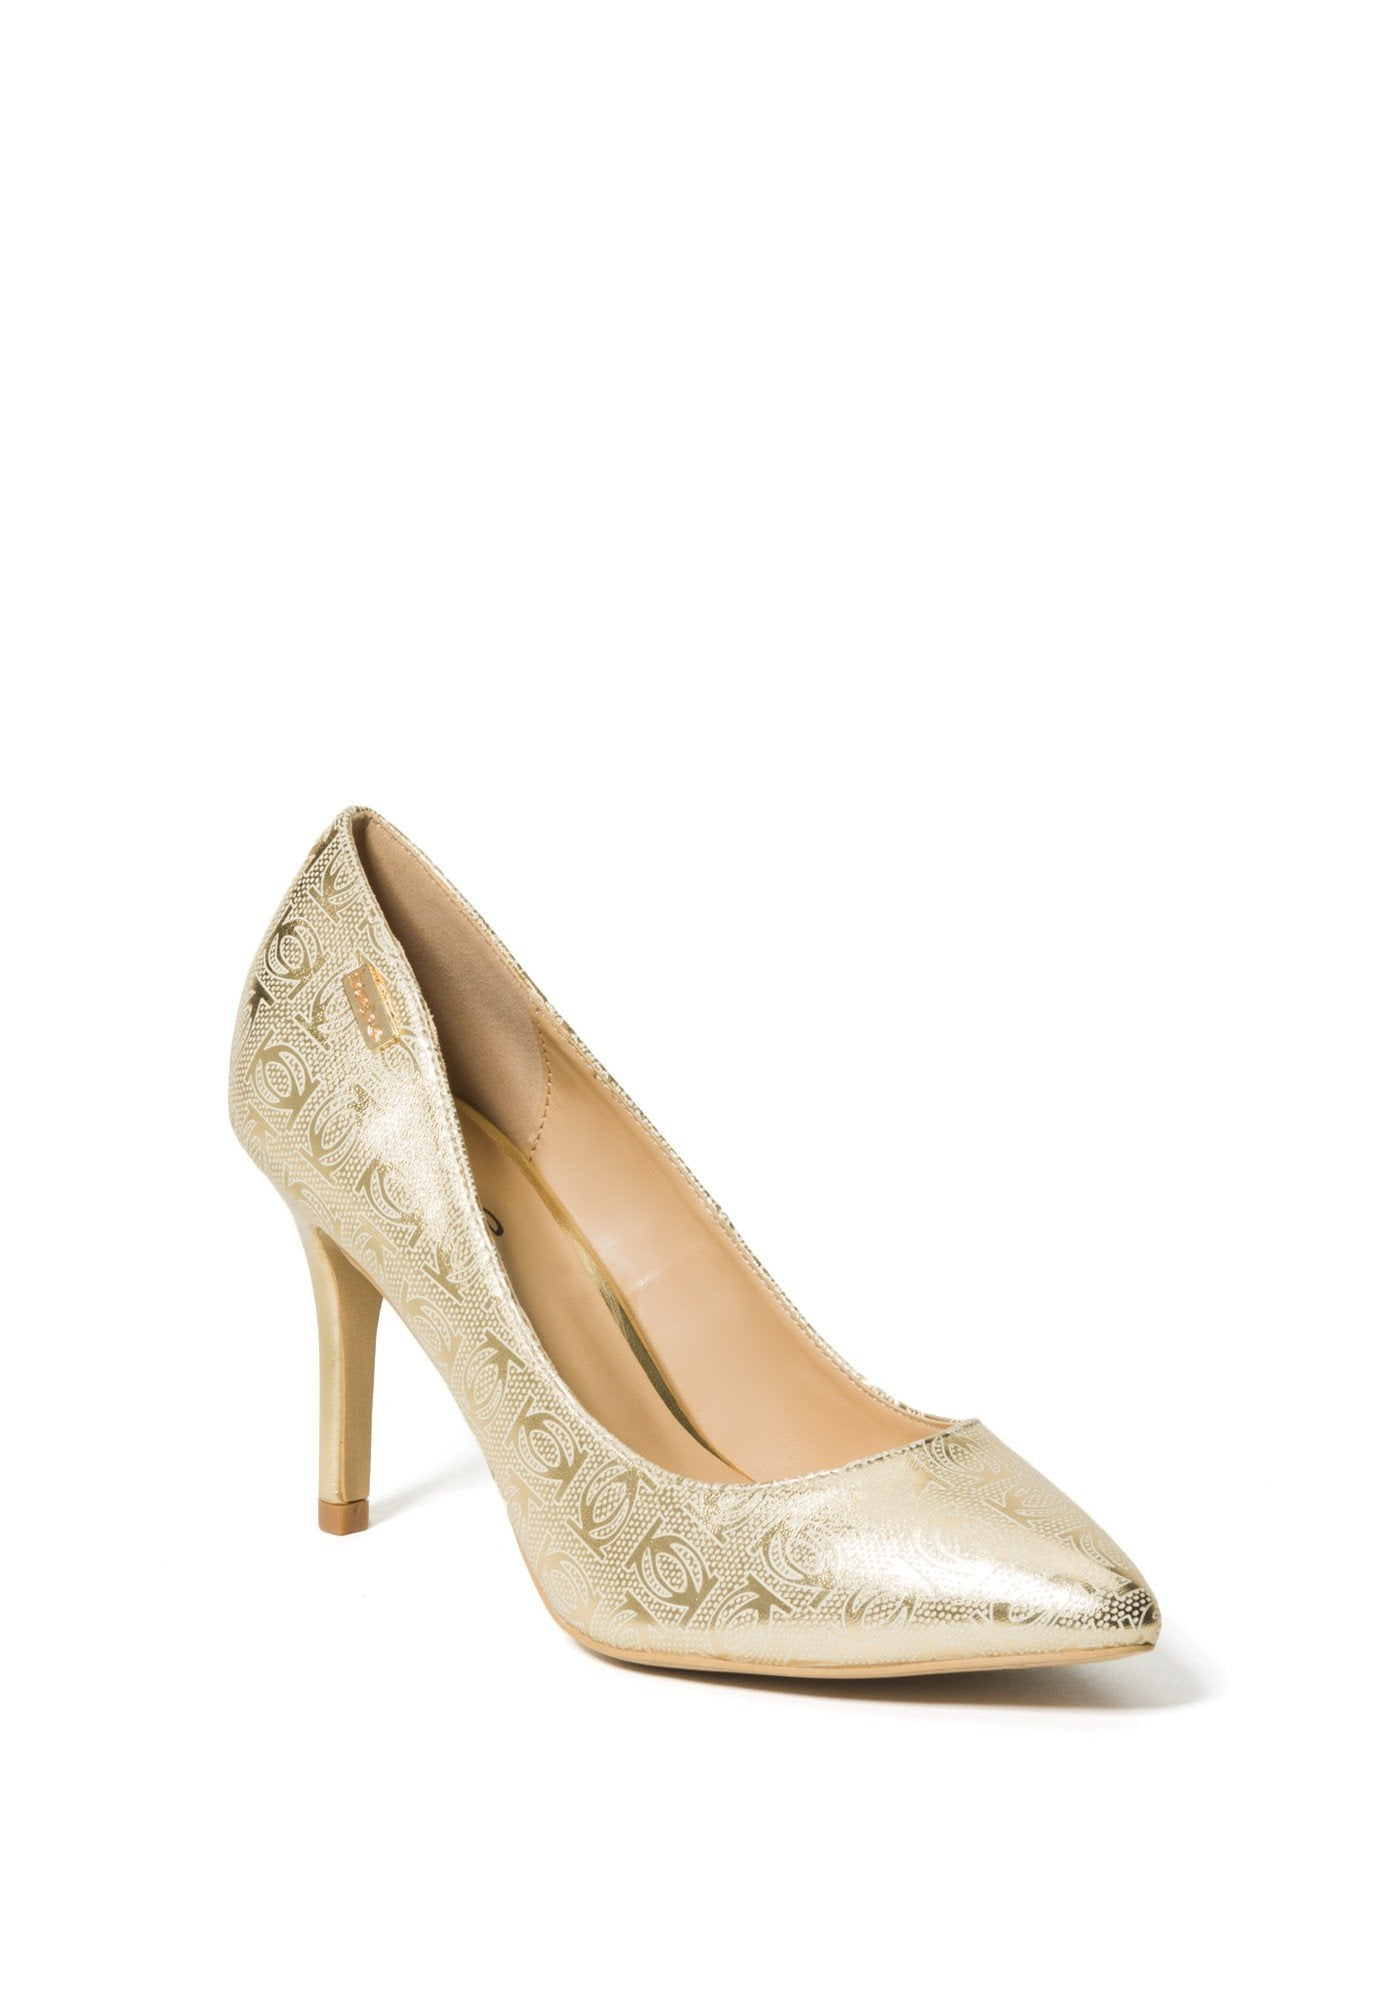 Bebe Women's Saydee Logo Pumps, Size 6 in Gold Synthetic